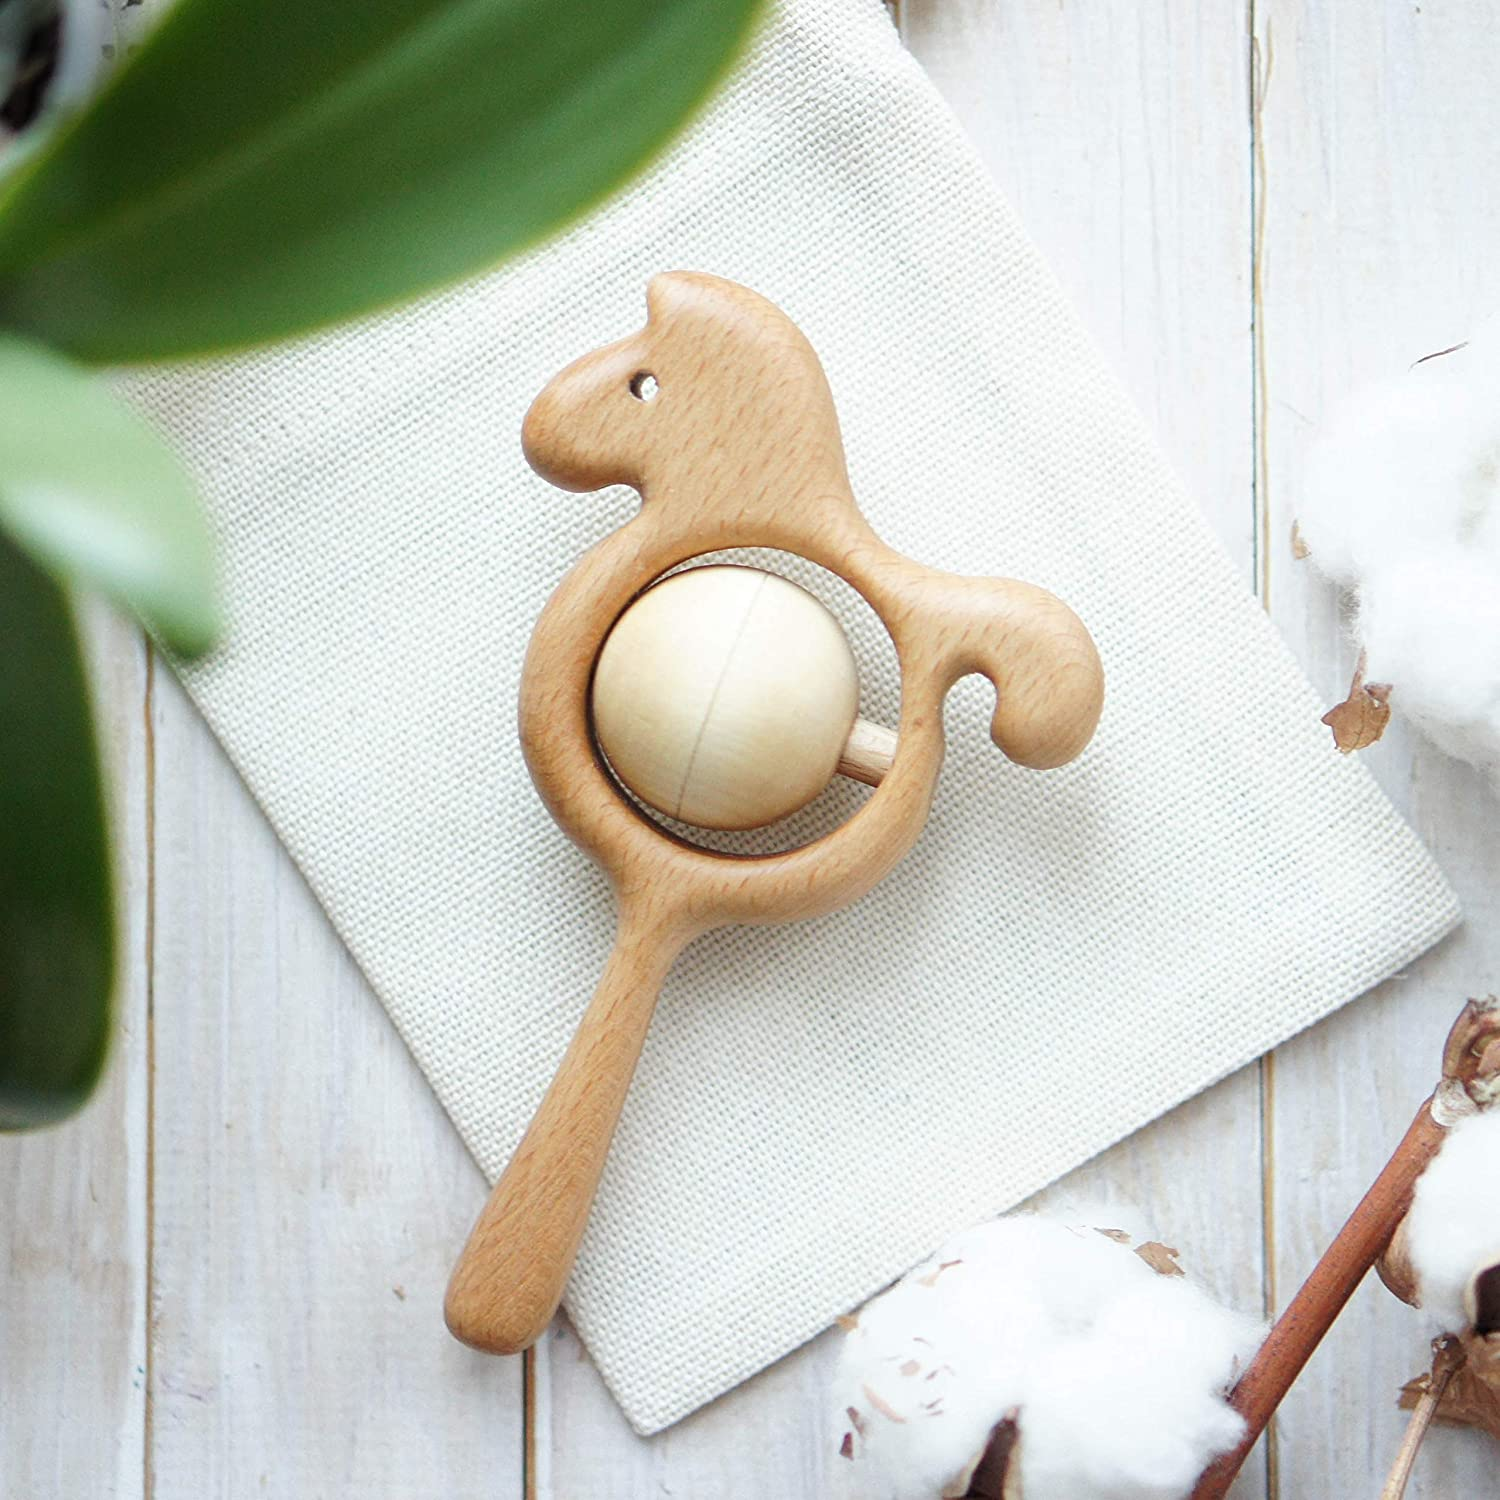 Organic Wooden Horse Rattle with Peas - Baby Shower Gift - Traditional Rattle Toy